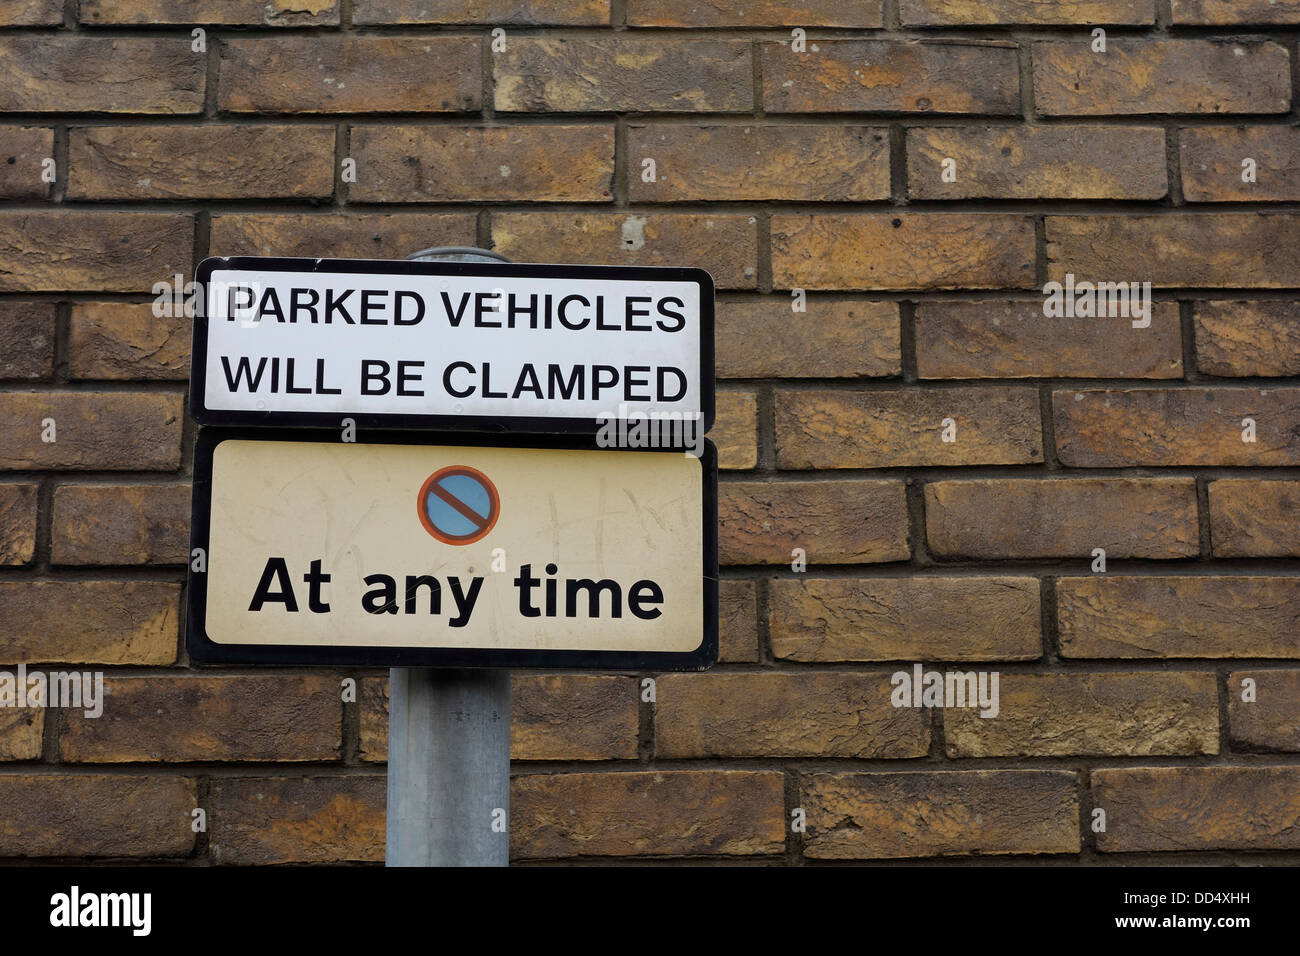 No parking at any time. Parked vehicles will be clamped sign, Belfast - Stock Image